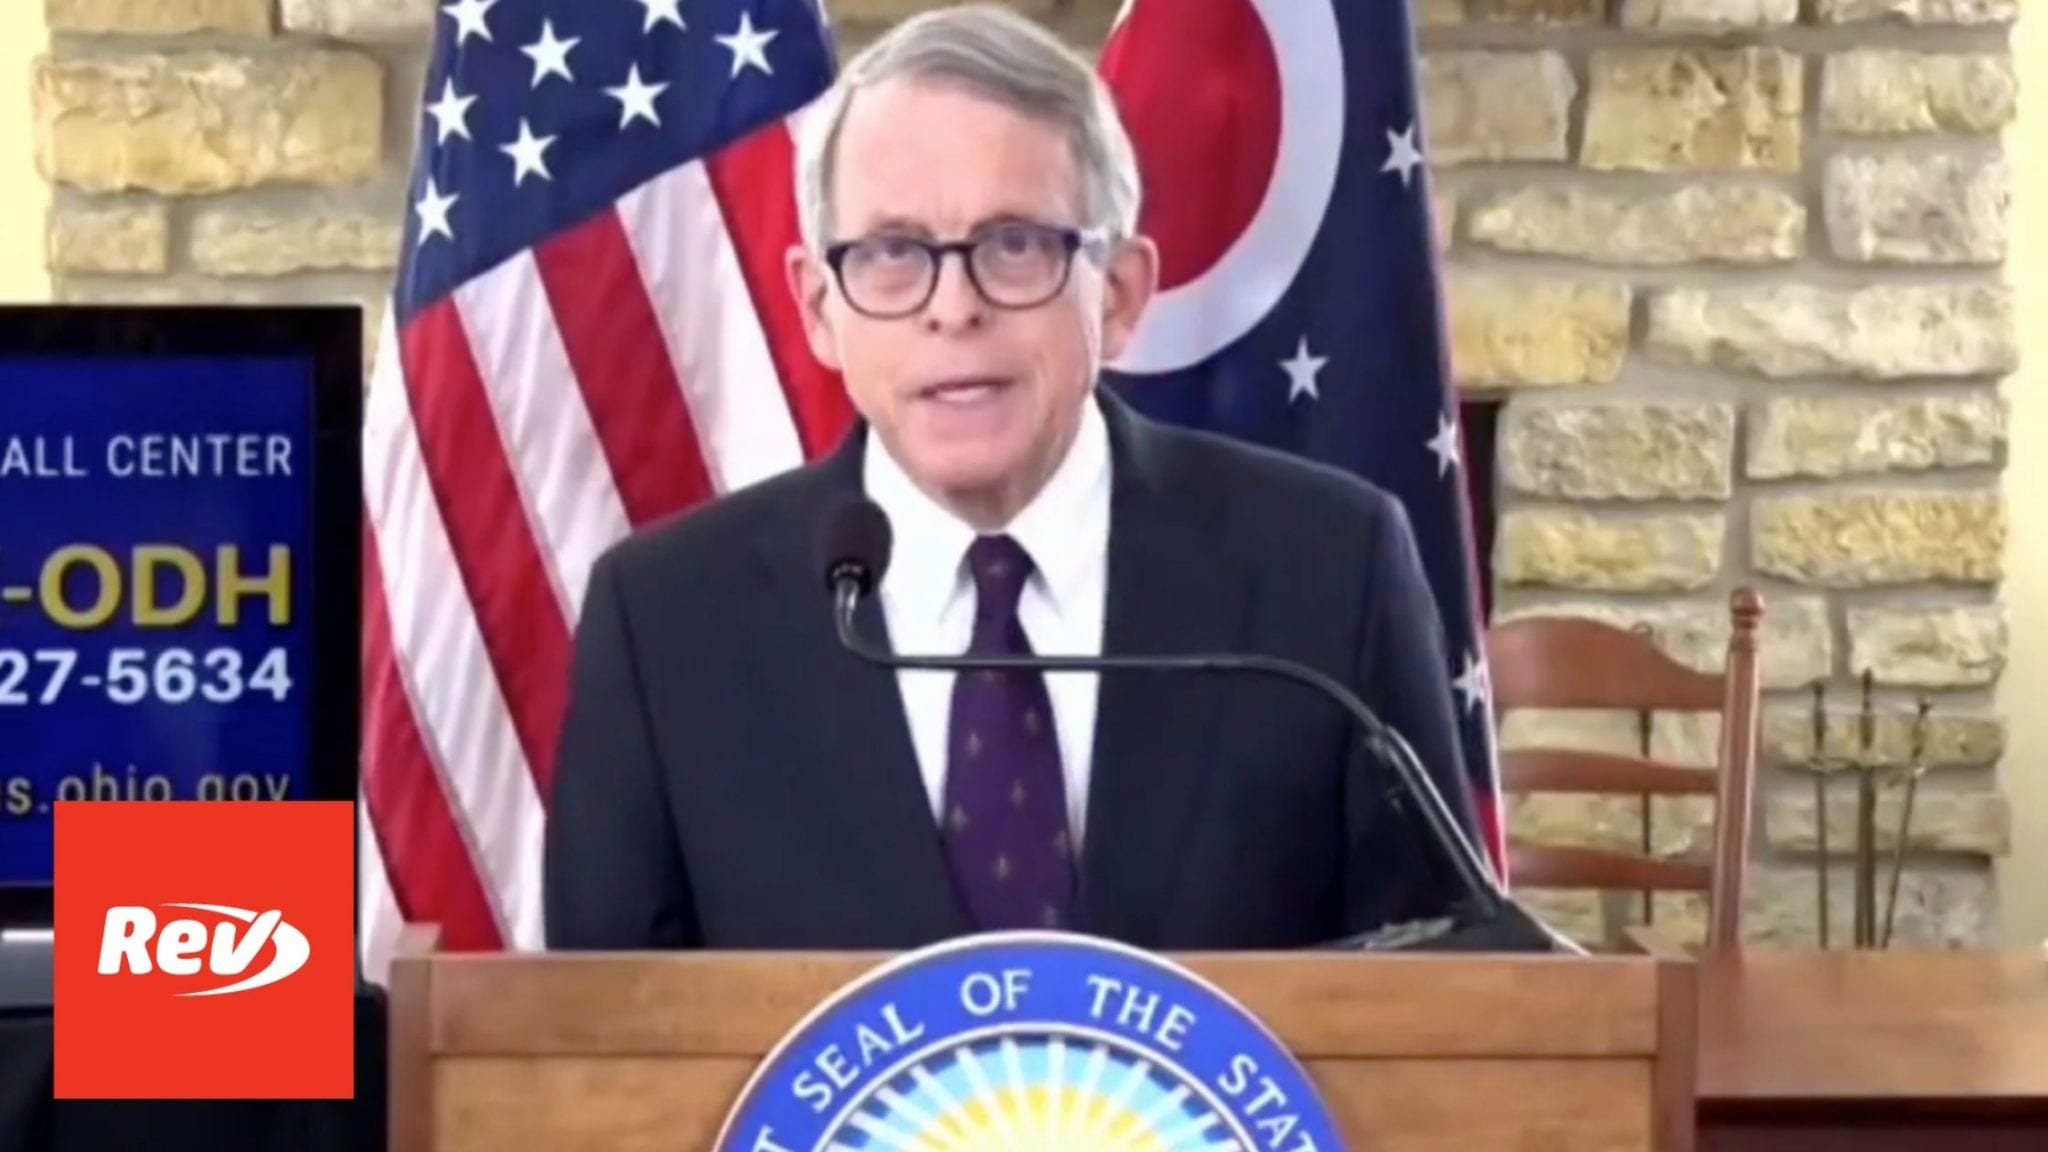 Ohio Gov. Mike DeWine COVID-19 Press Conference Transcript February 16